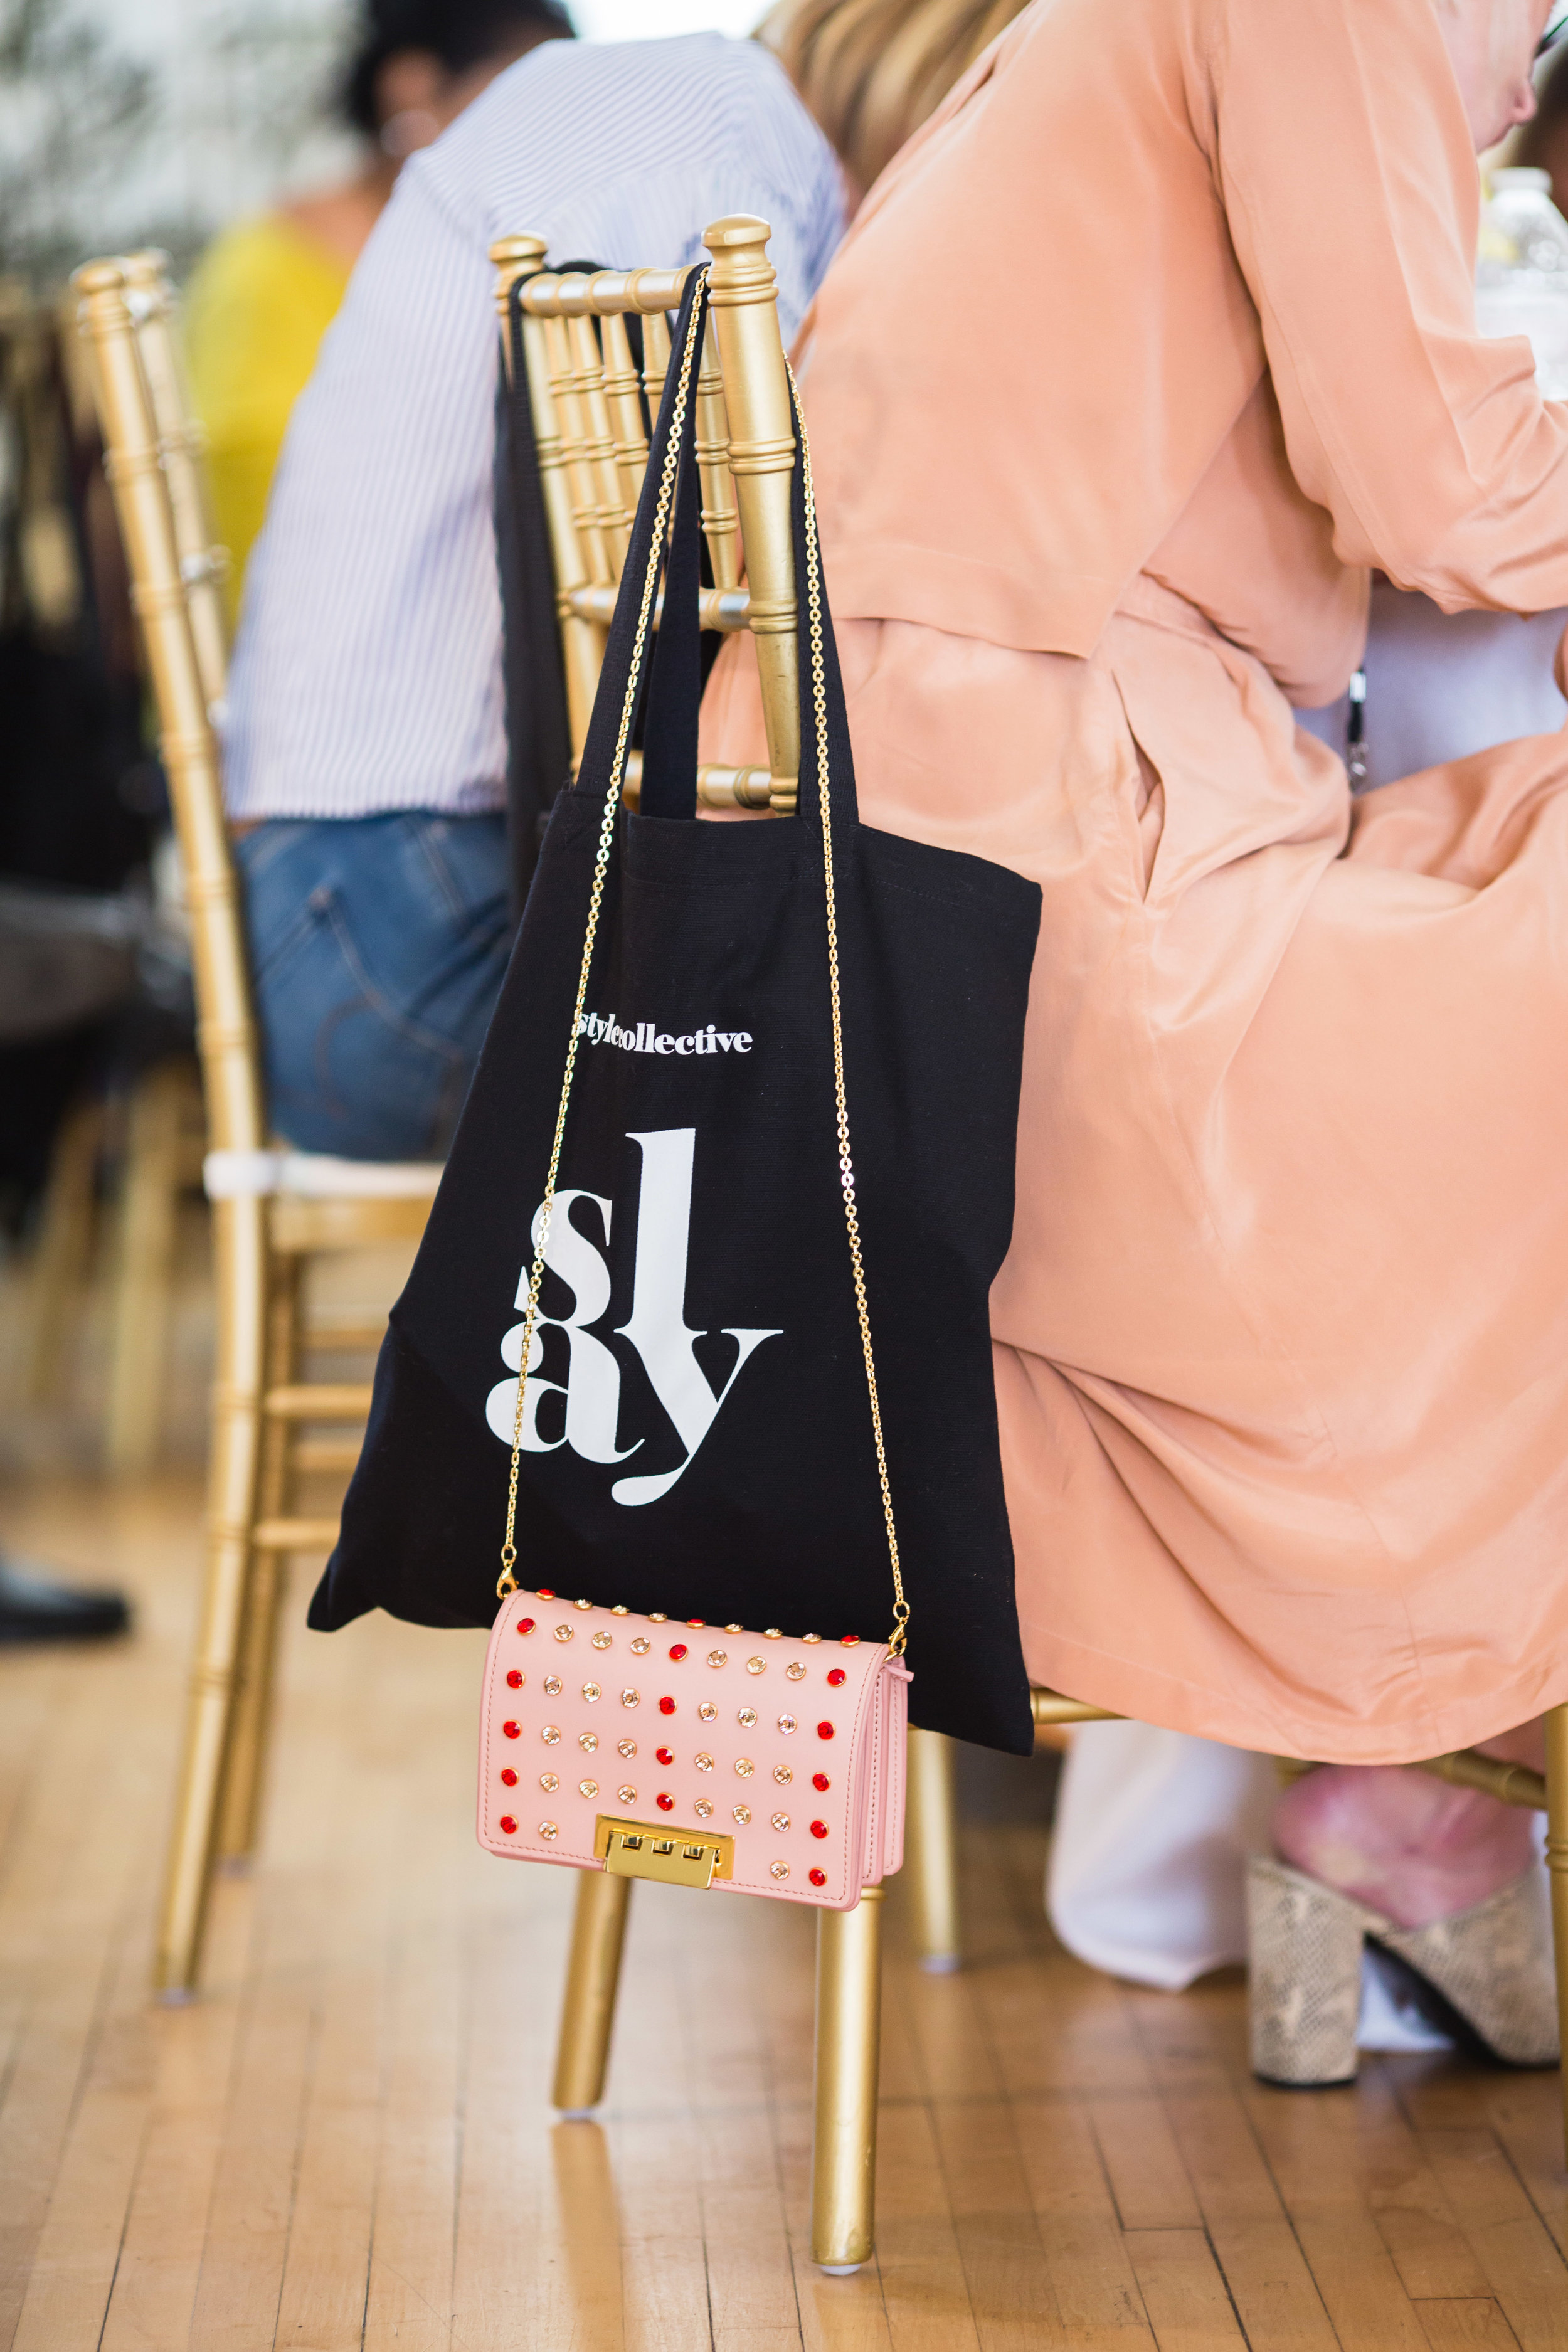 Stephanie Mack of The Borrowed Babes Fashion Blog at Style Collective Conference 2018